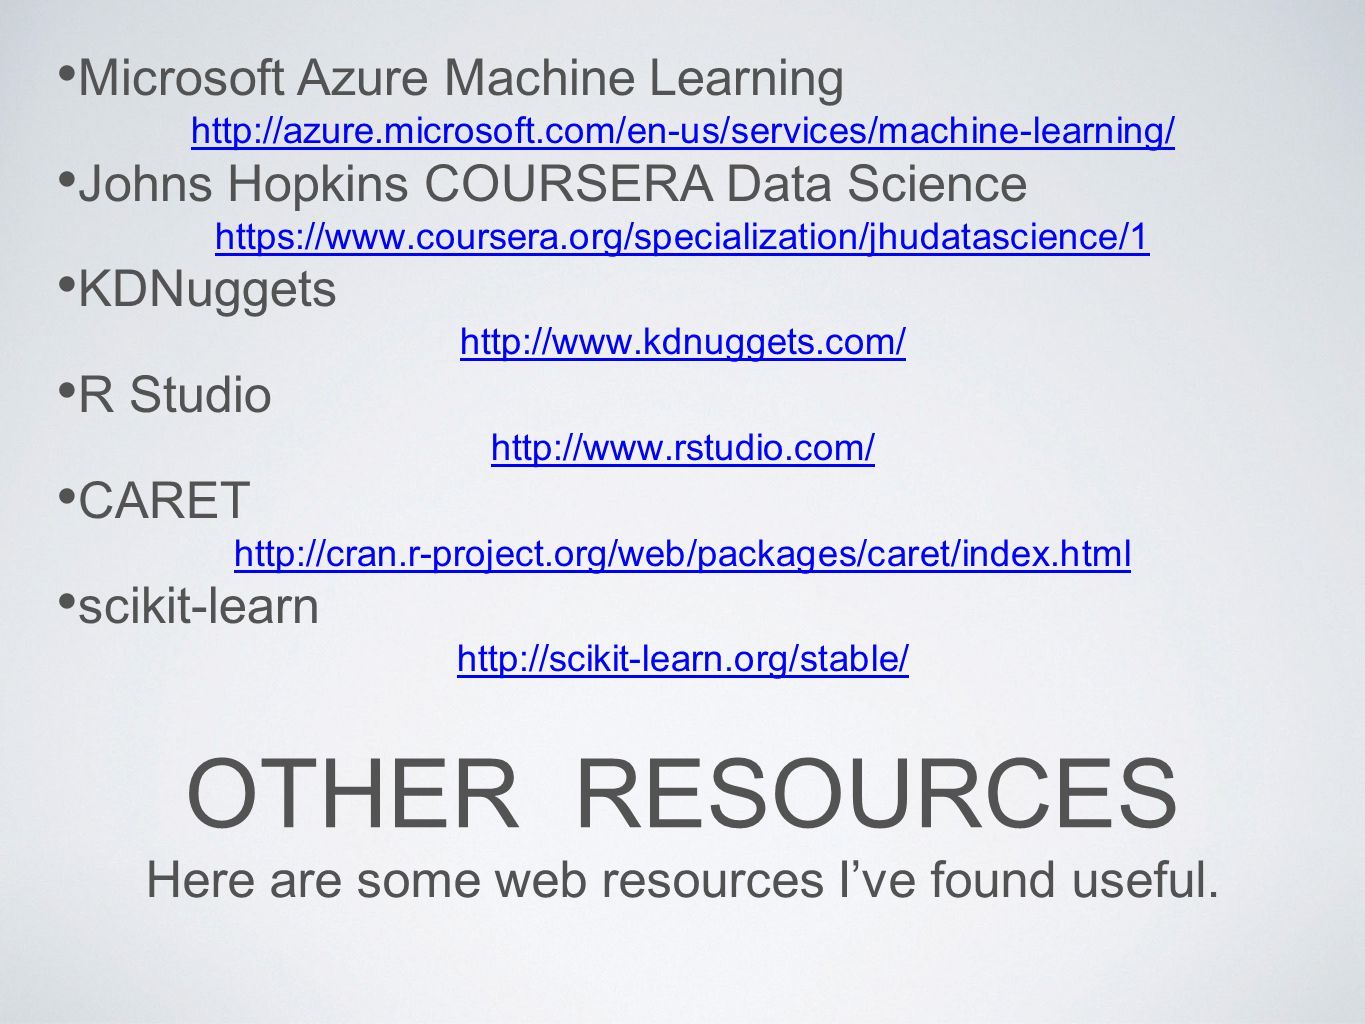 Here are some web resources I've found useful.